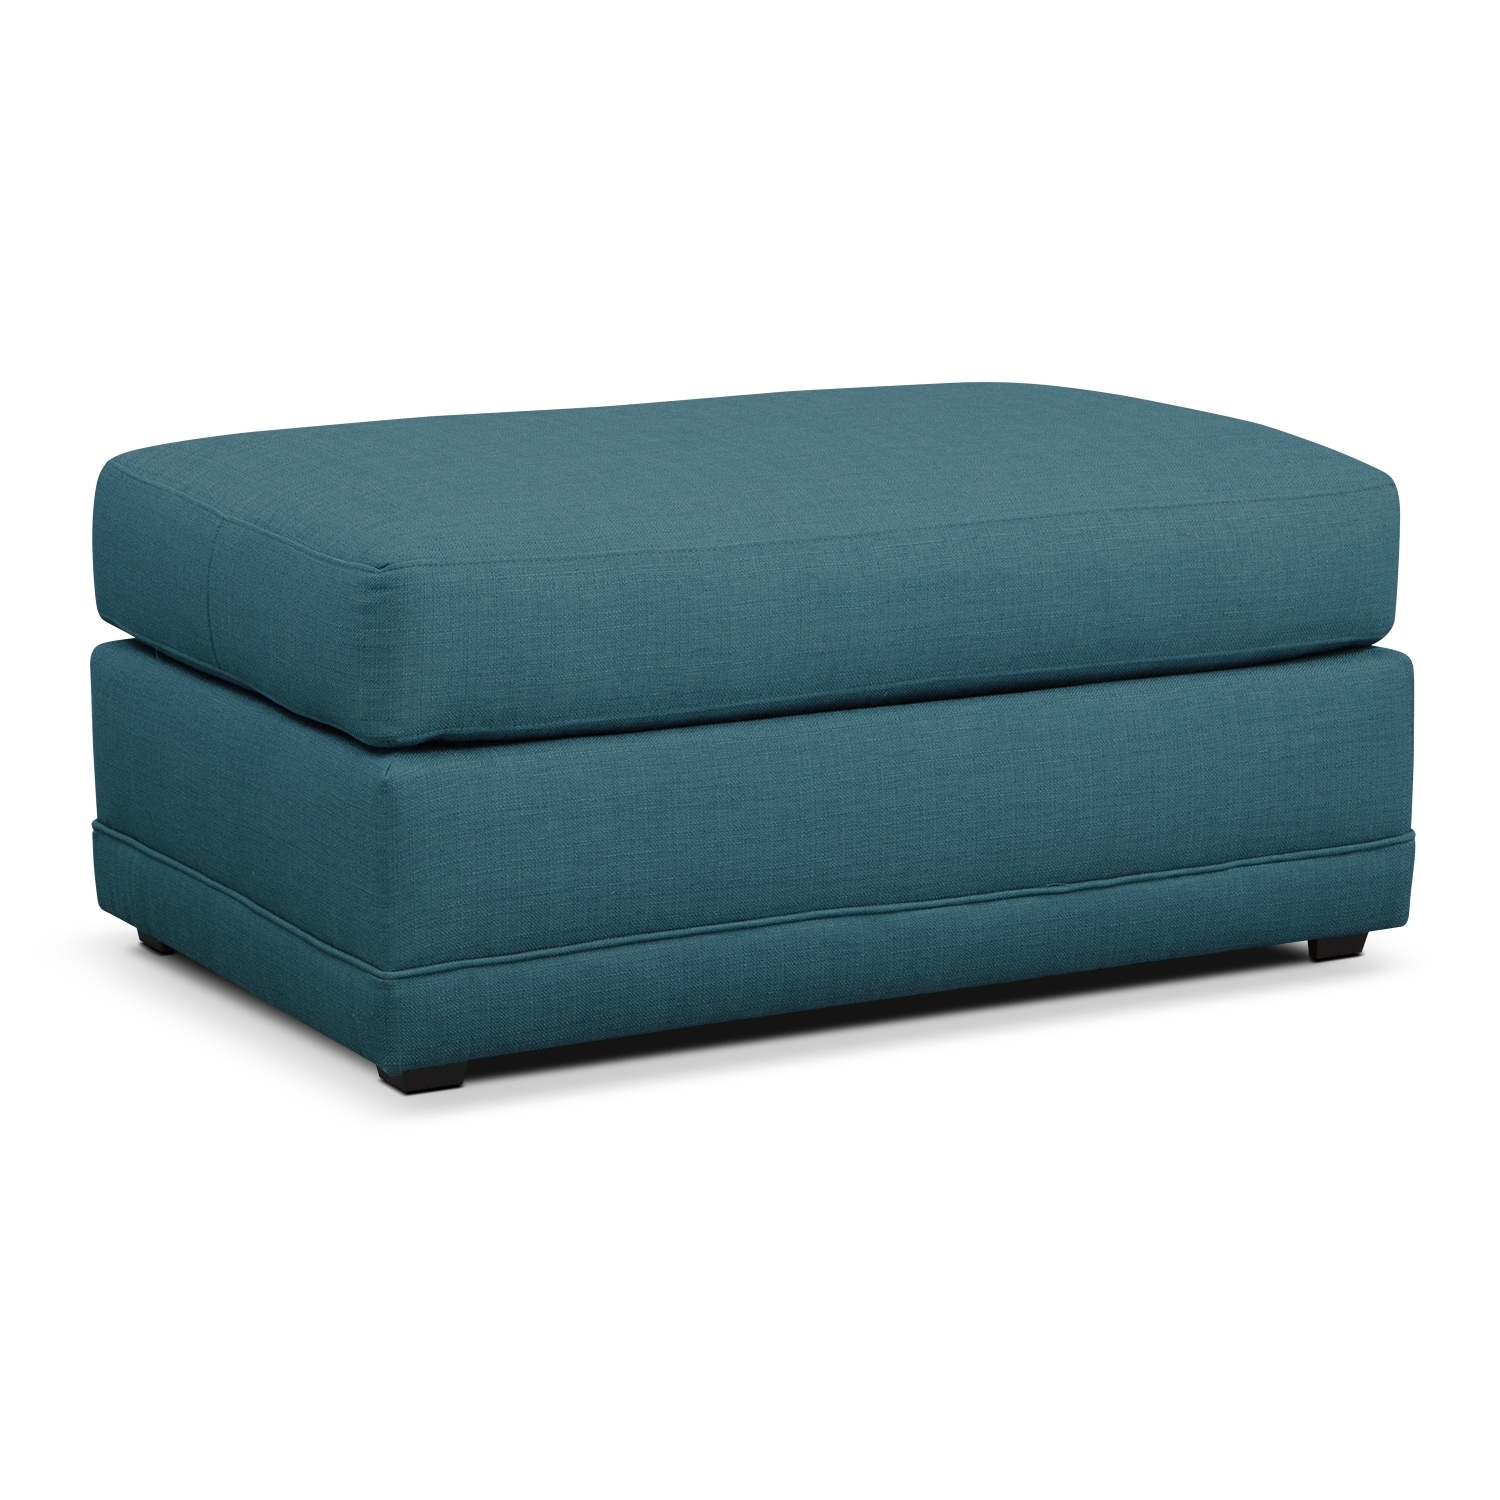 Living Room Furniture - Kismet Ottoman - Teal